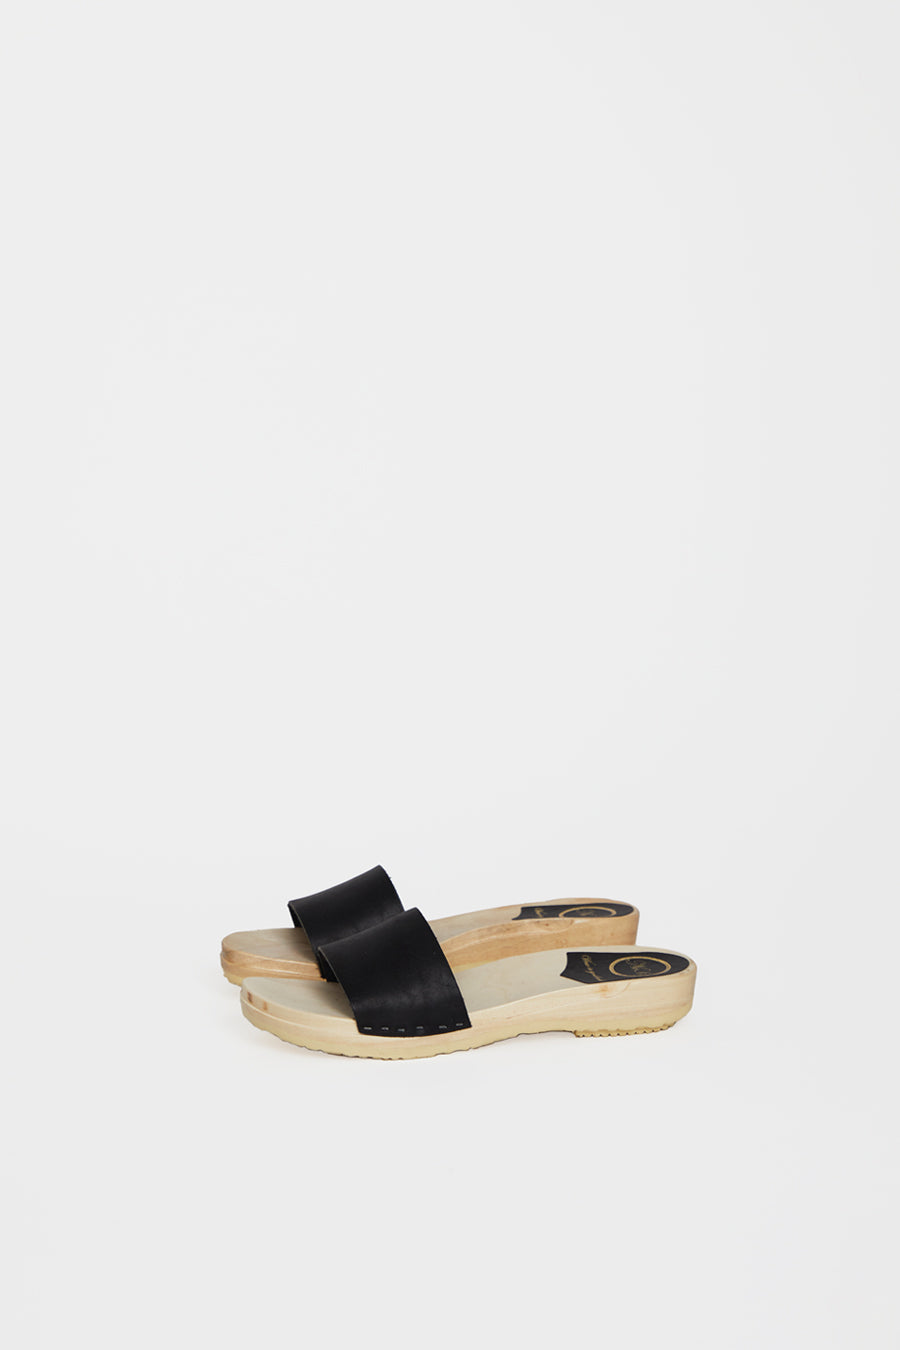 No.6 Line Sandal on Flat Base in Coal